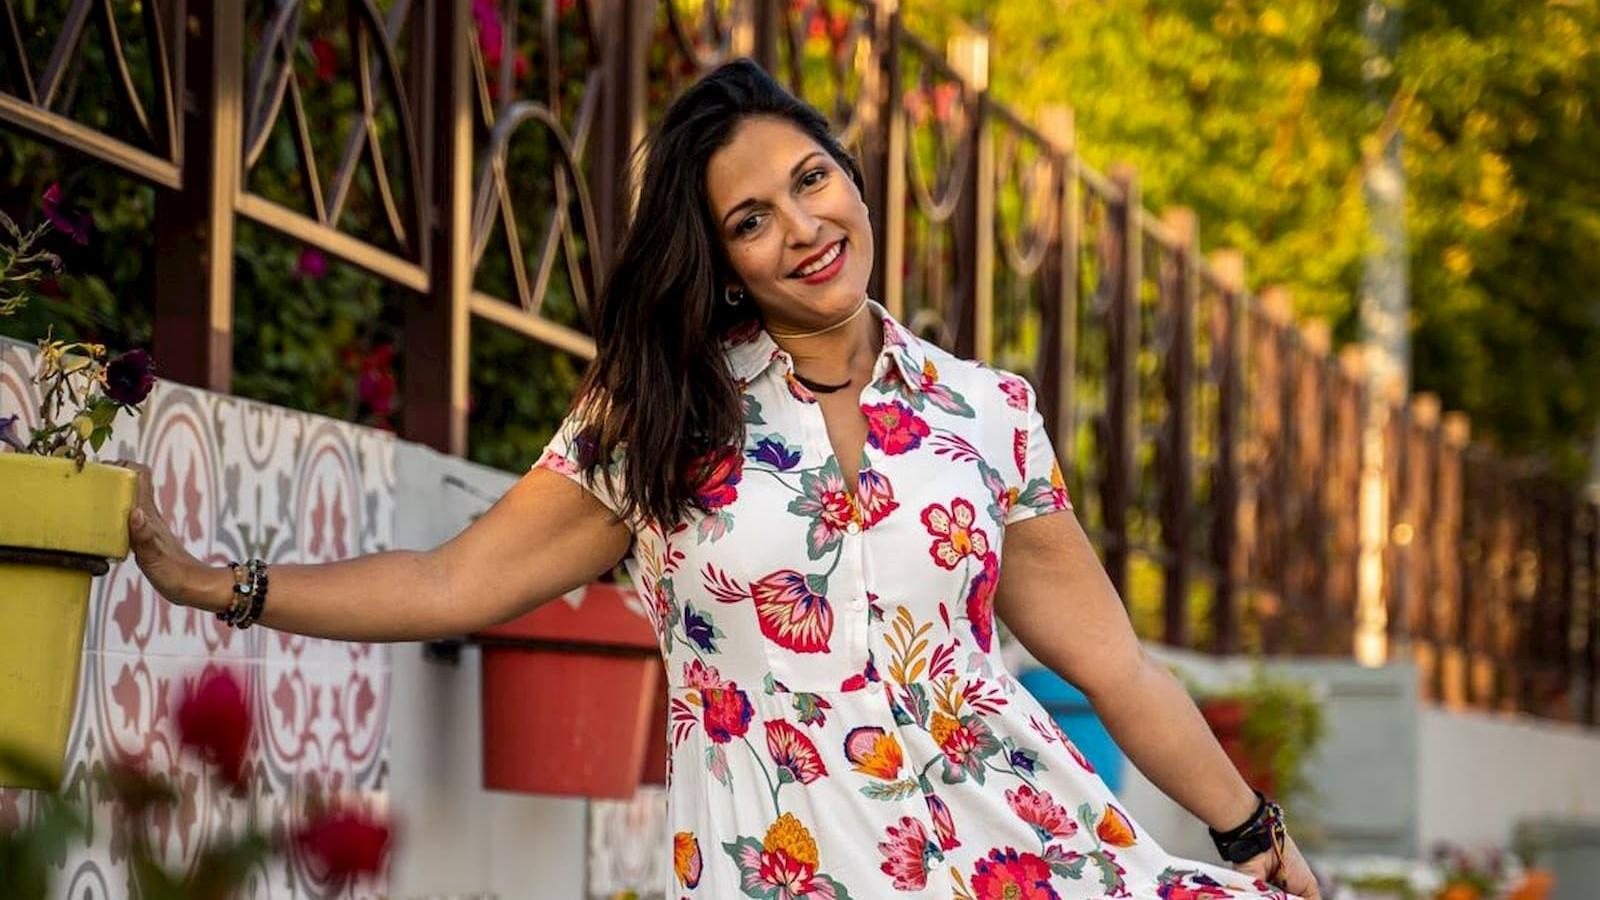 QL Exclusive: An interview with Qatar-based empowerment and mindset coach, Anahi Brown